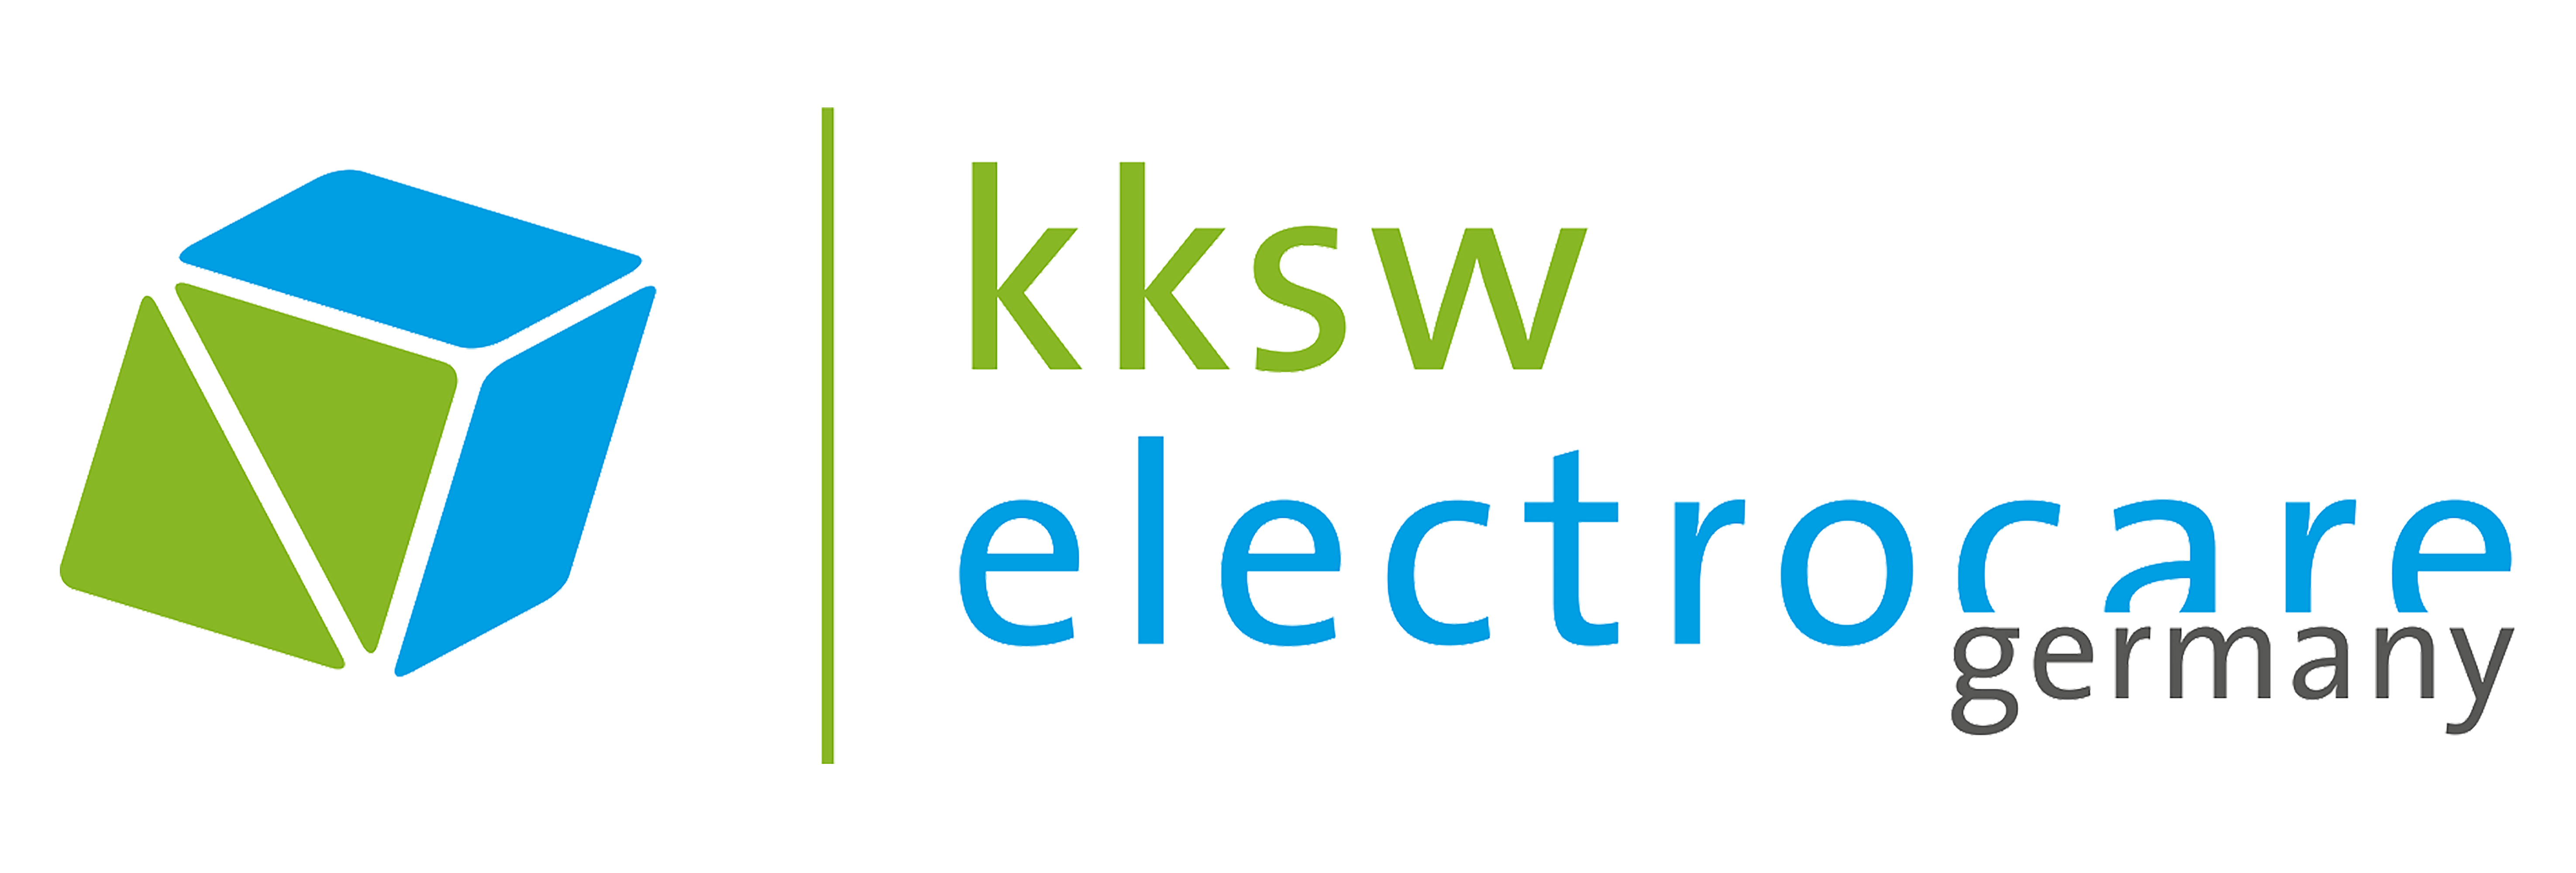 KKSW electrocare